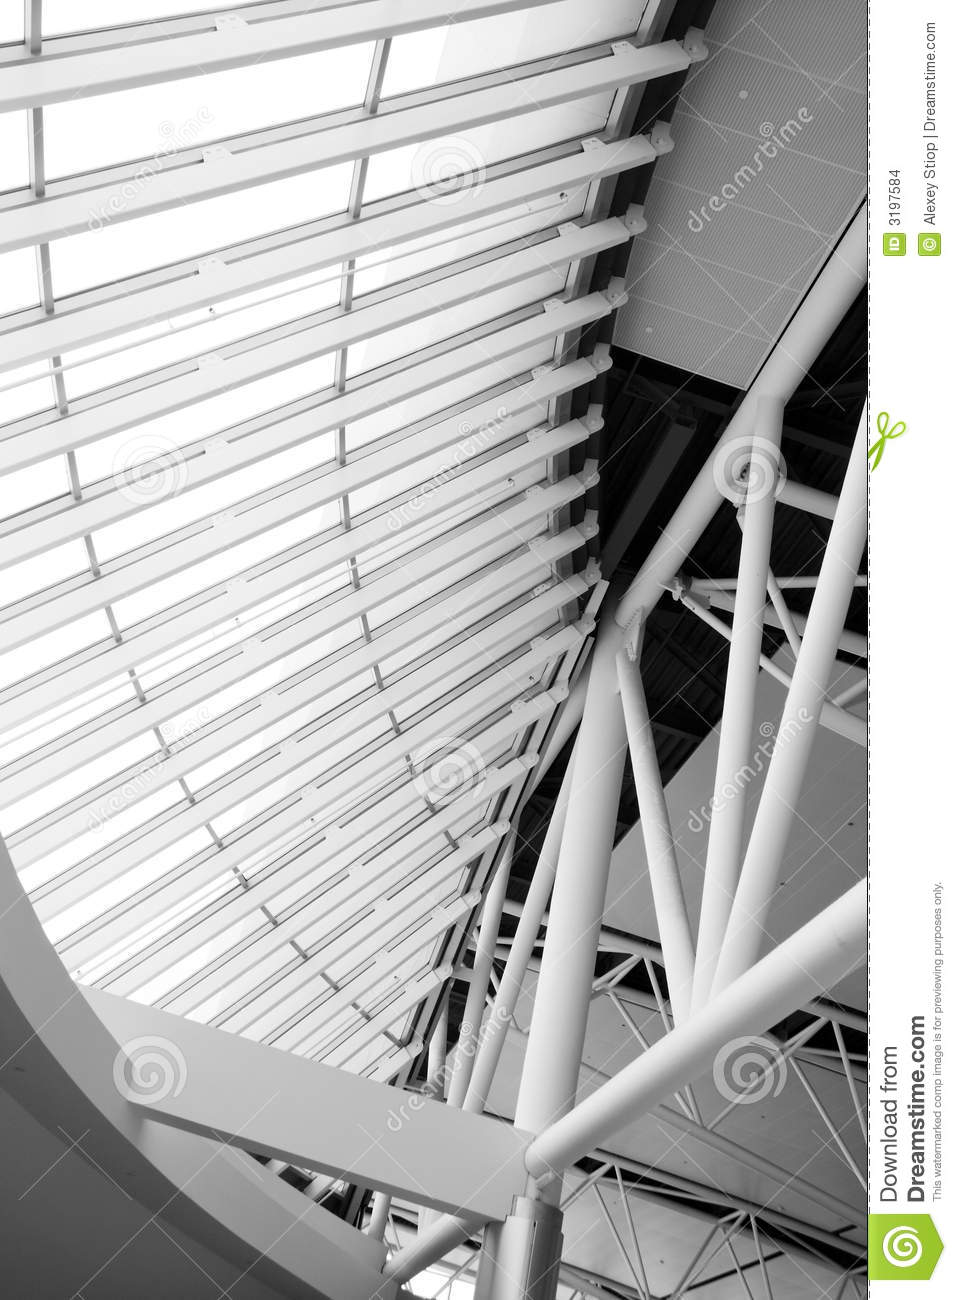 Groupes architecturaux